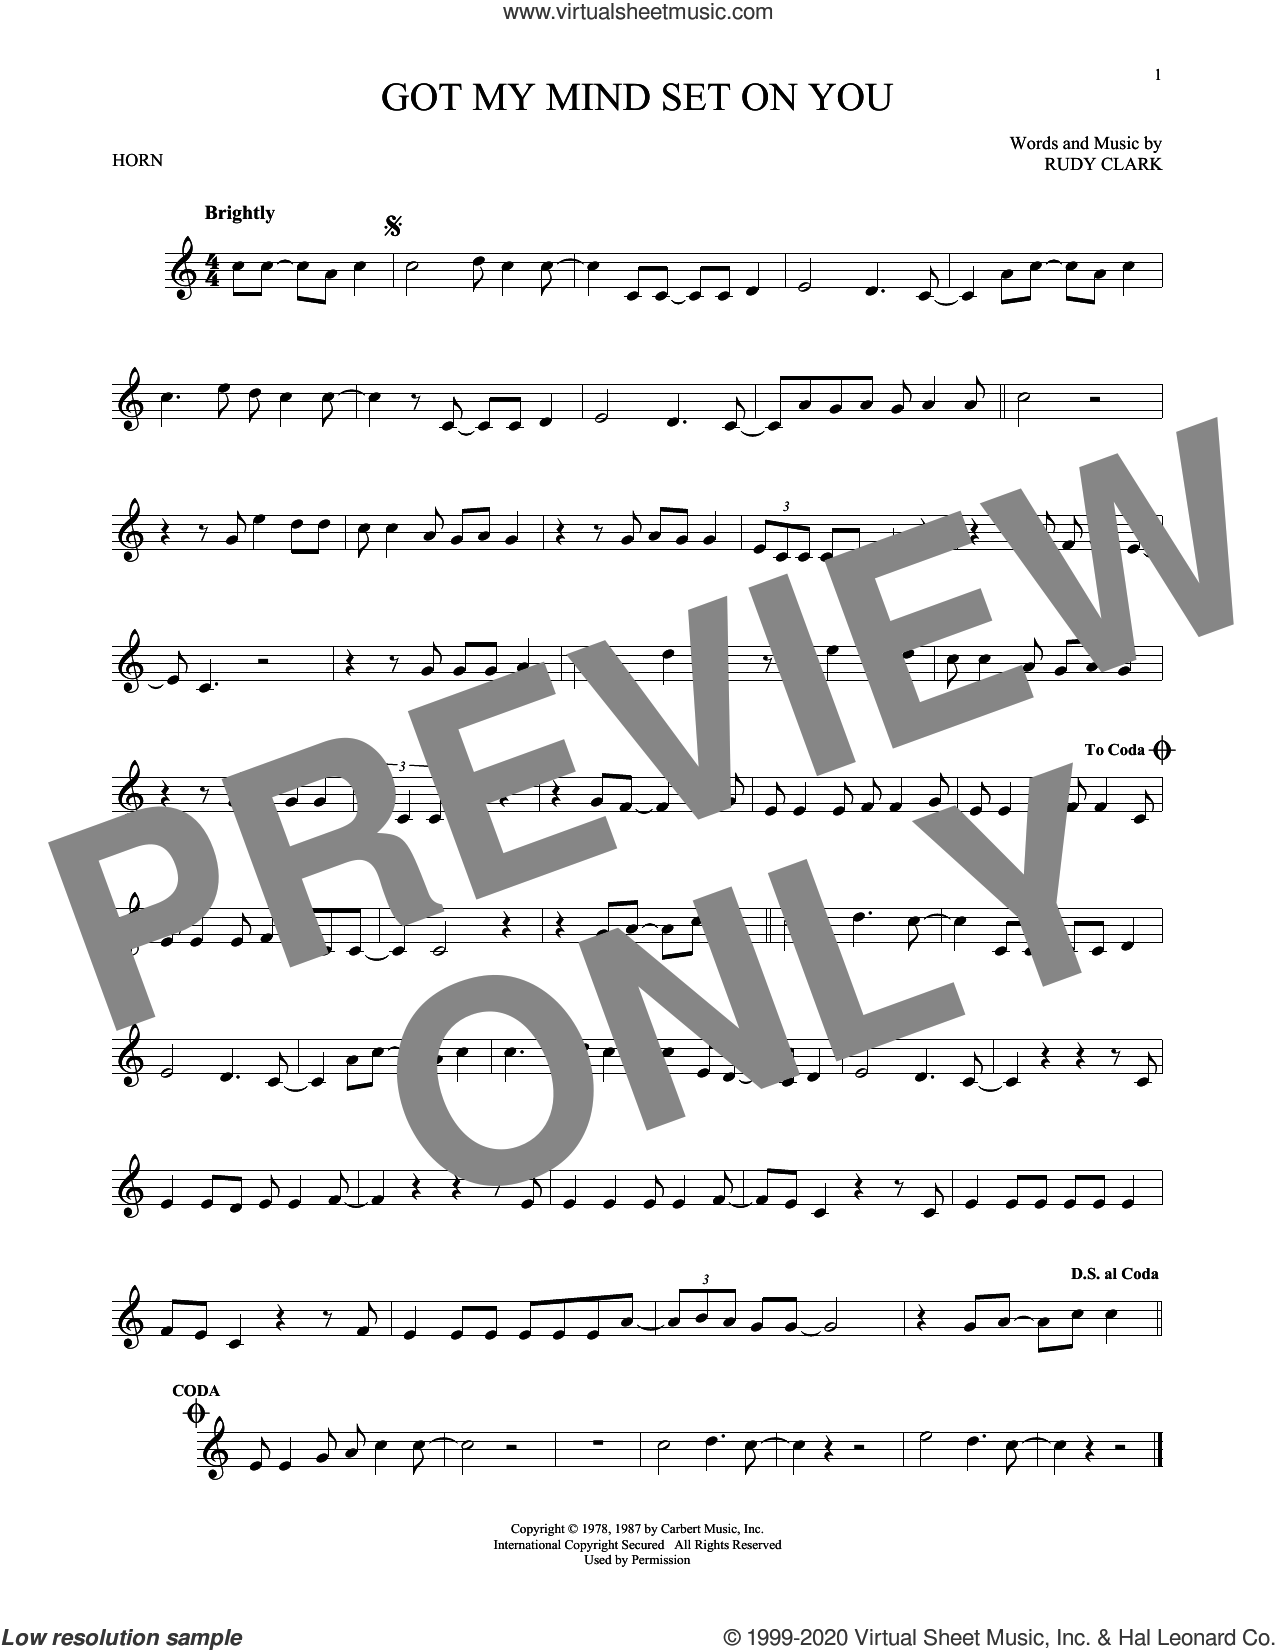 Got My Mind Set On You sheet music for horn solo by George Harrison and Rudy Clark, intermediate skill level